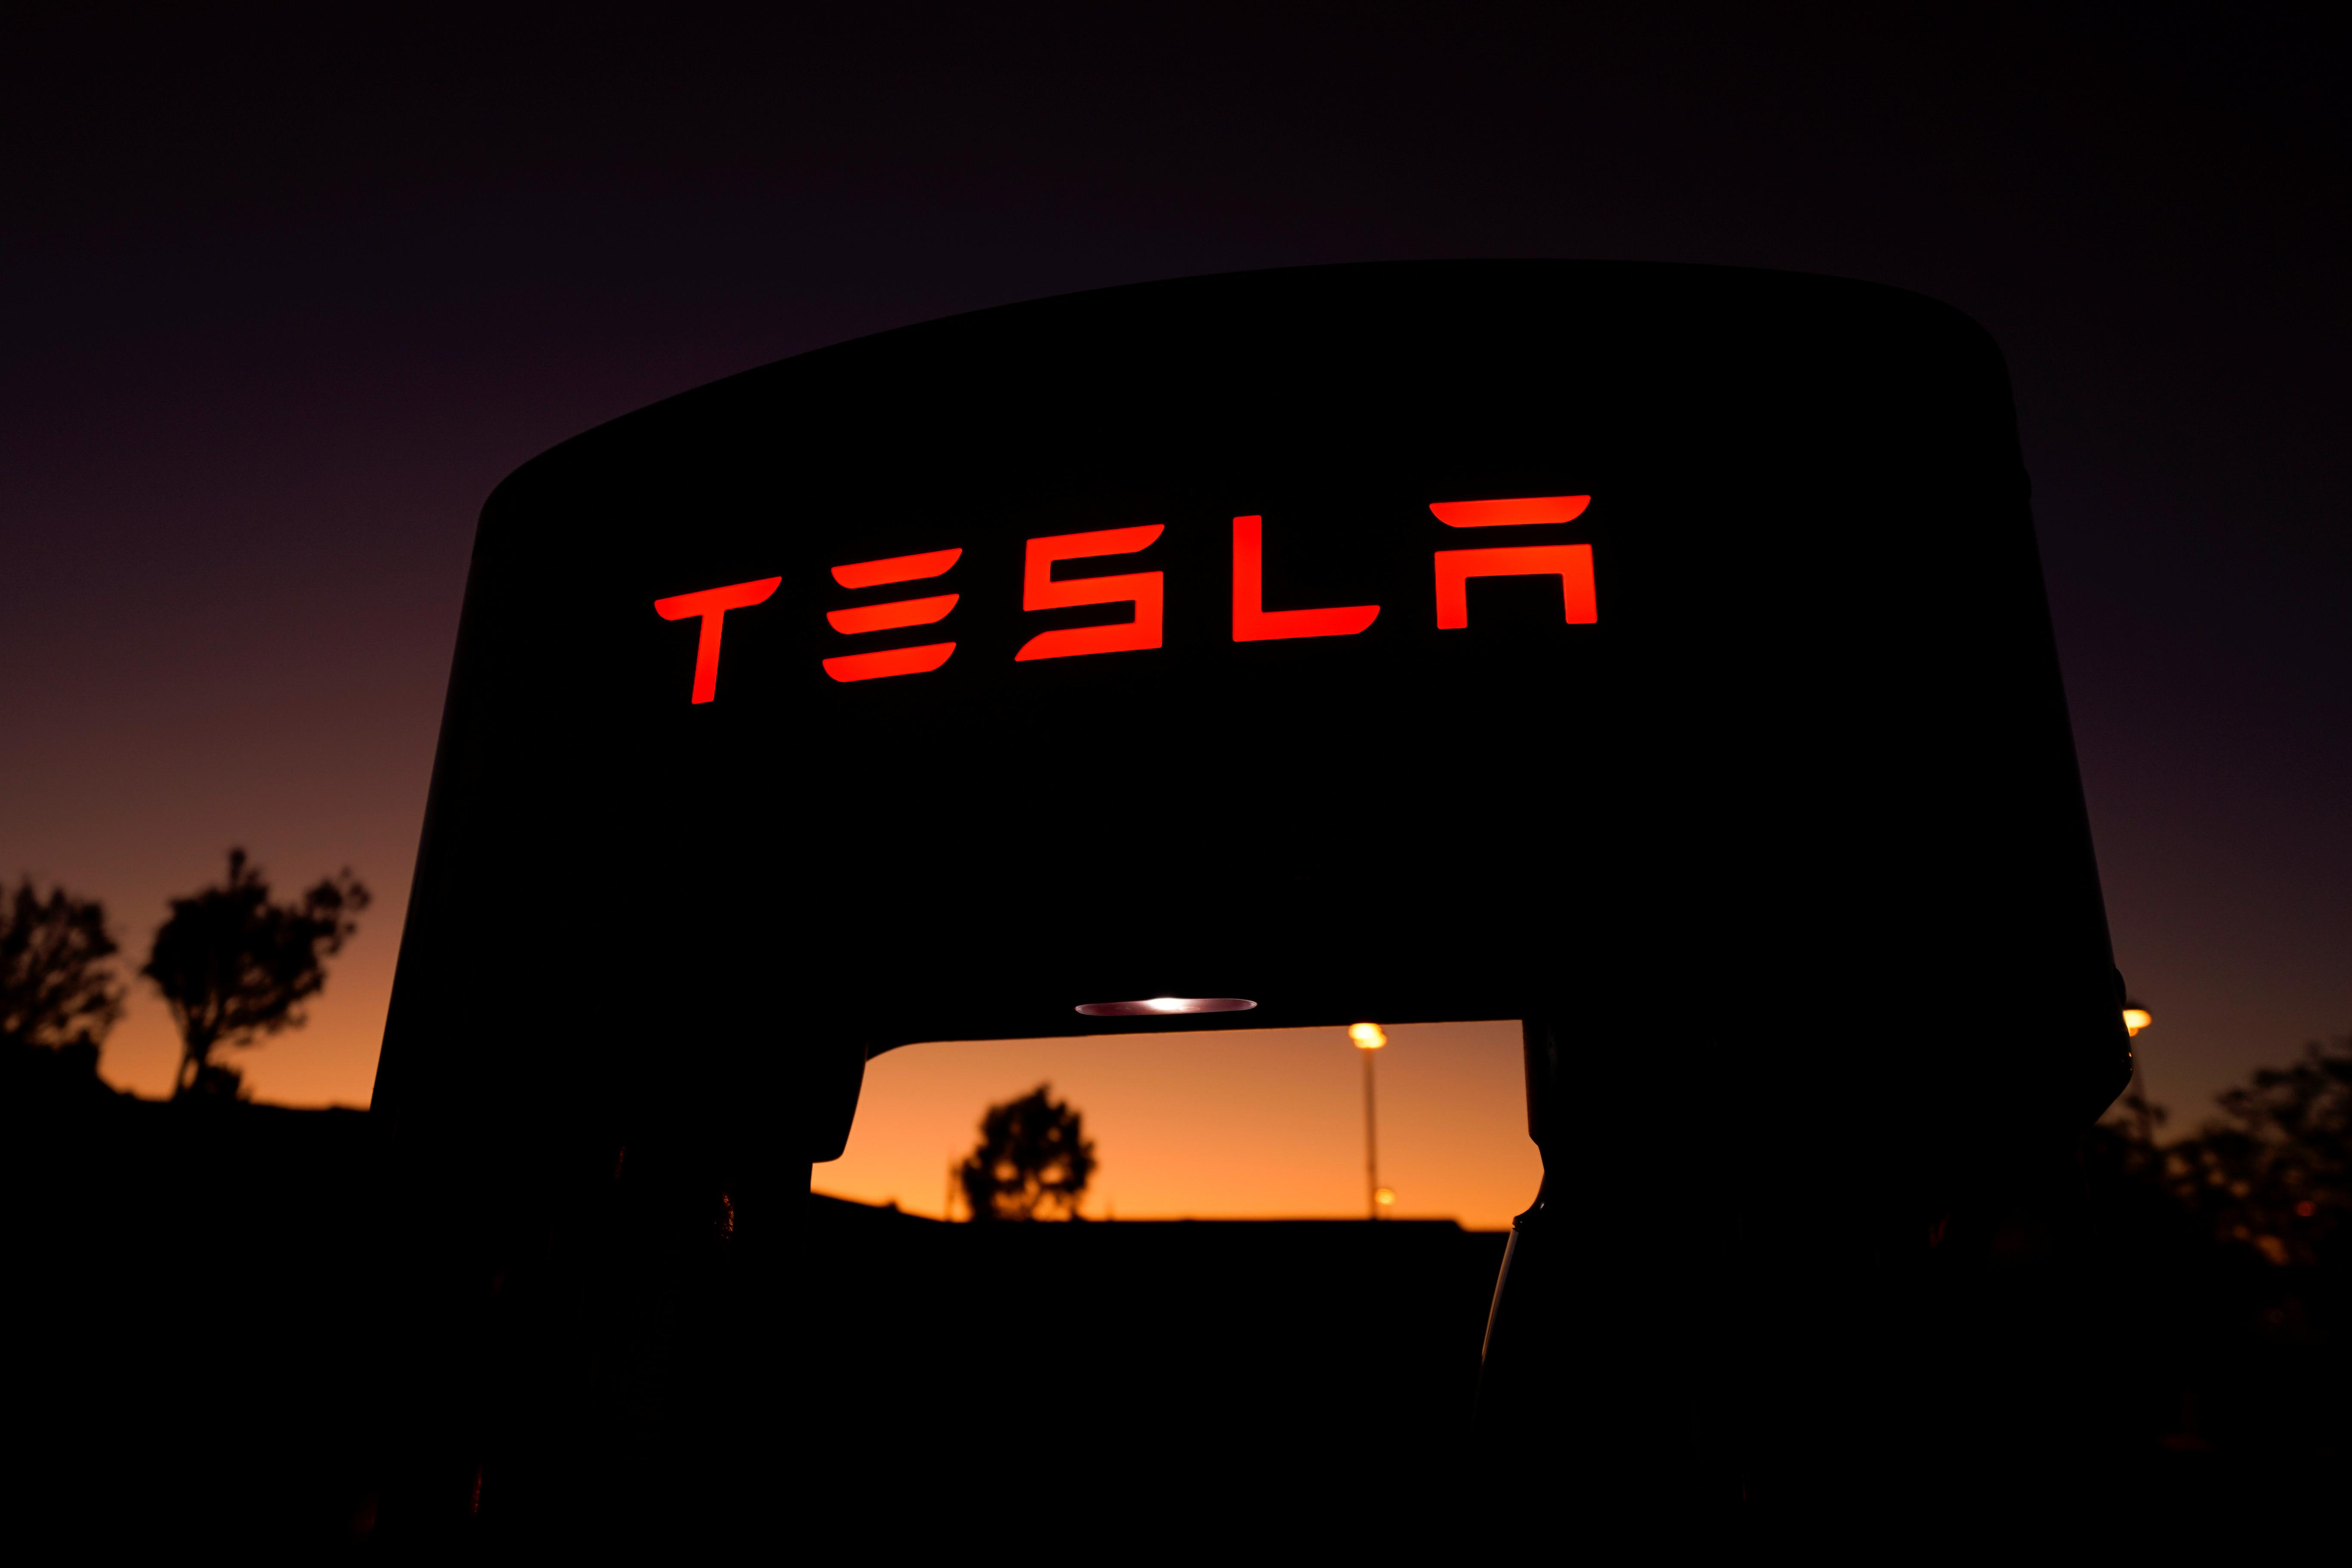 Troubles with Tesla's automated parking summon safety regulators